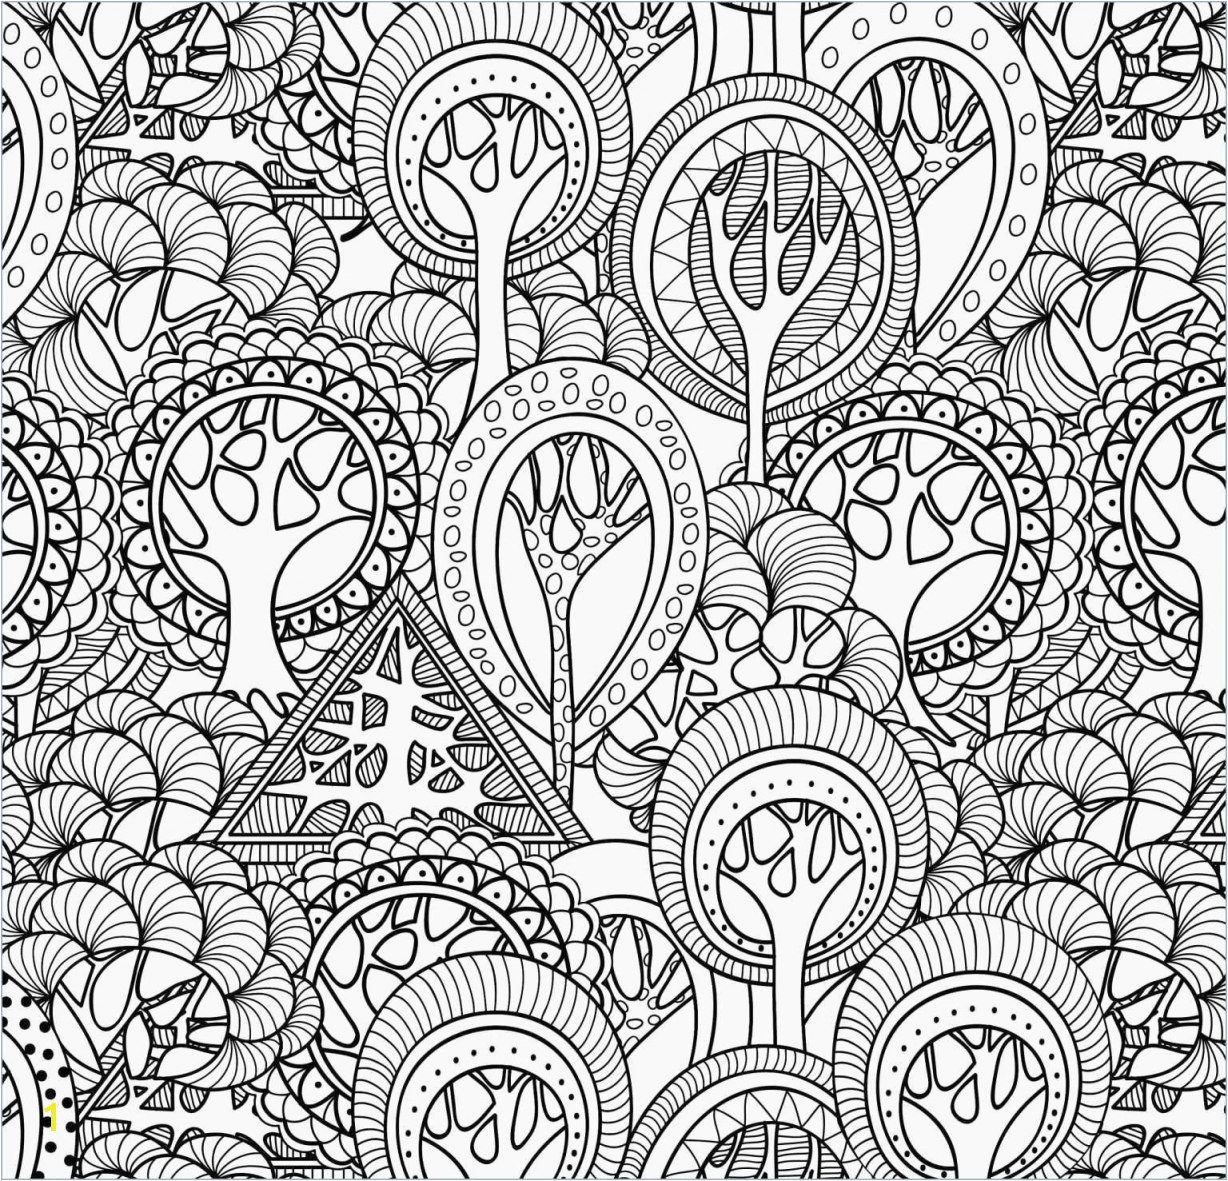 Elegant Christmas ornament Coloring Pages Printable Coloring Pages For Kids